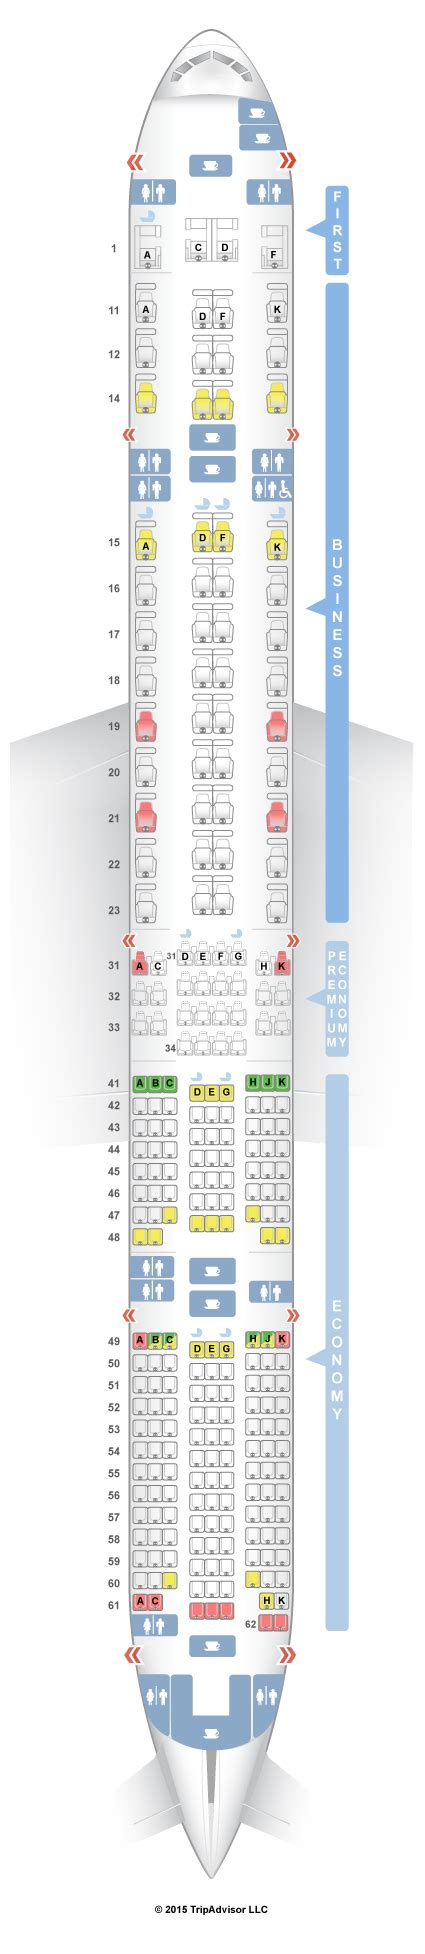 emirates boeing 777 300er seat guru cathay pacific aircraft 77w seat plan the best and